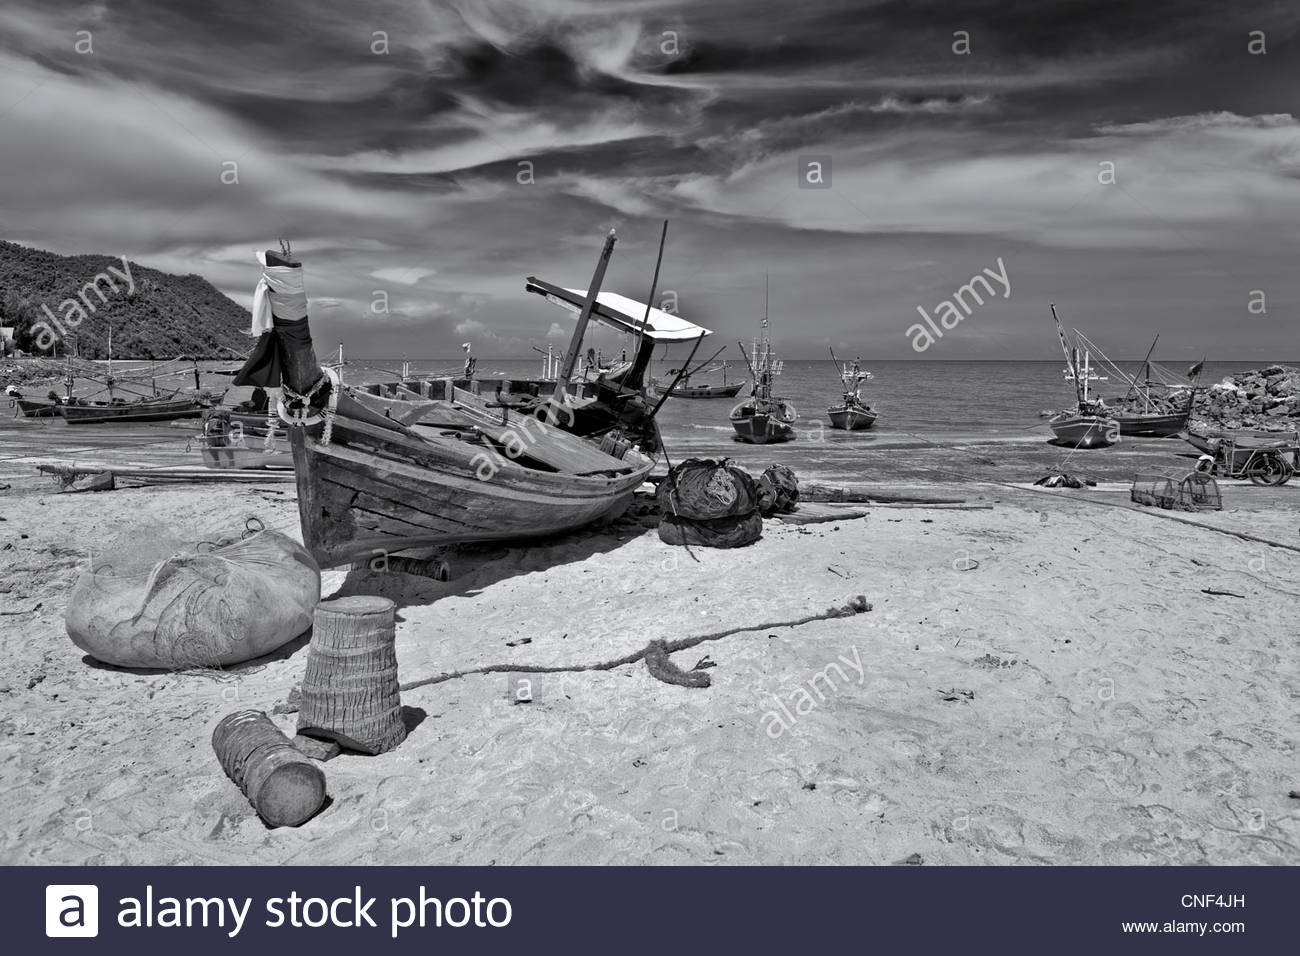 Dramatic skies overhanging a Thailand fishing port. S.E. Asia Black and white photography - Stock Image